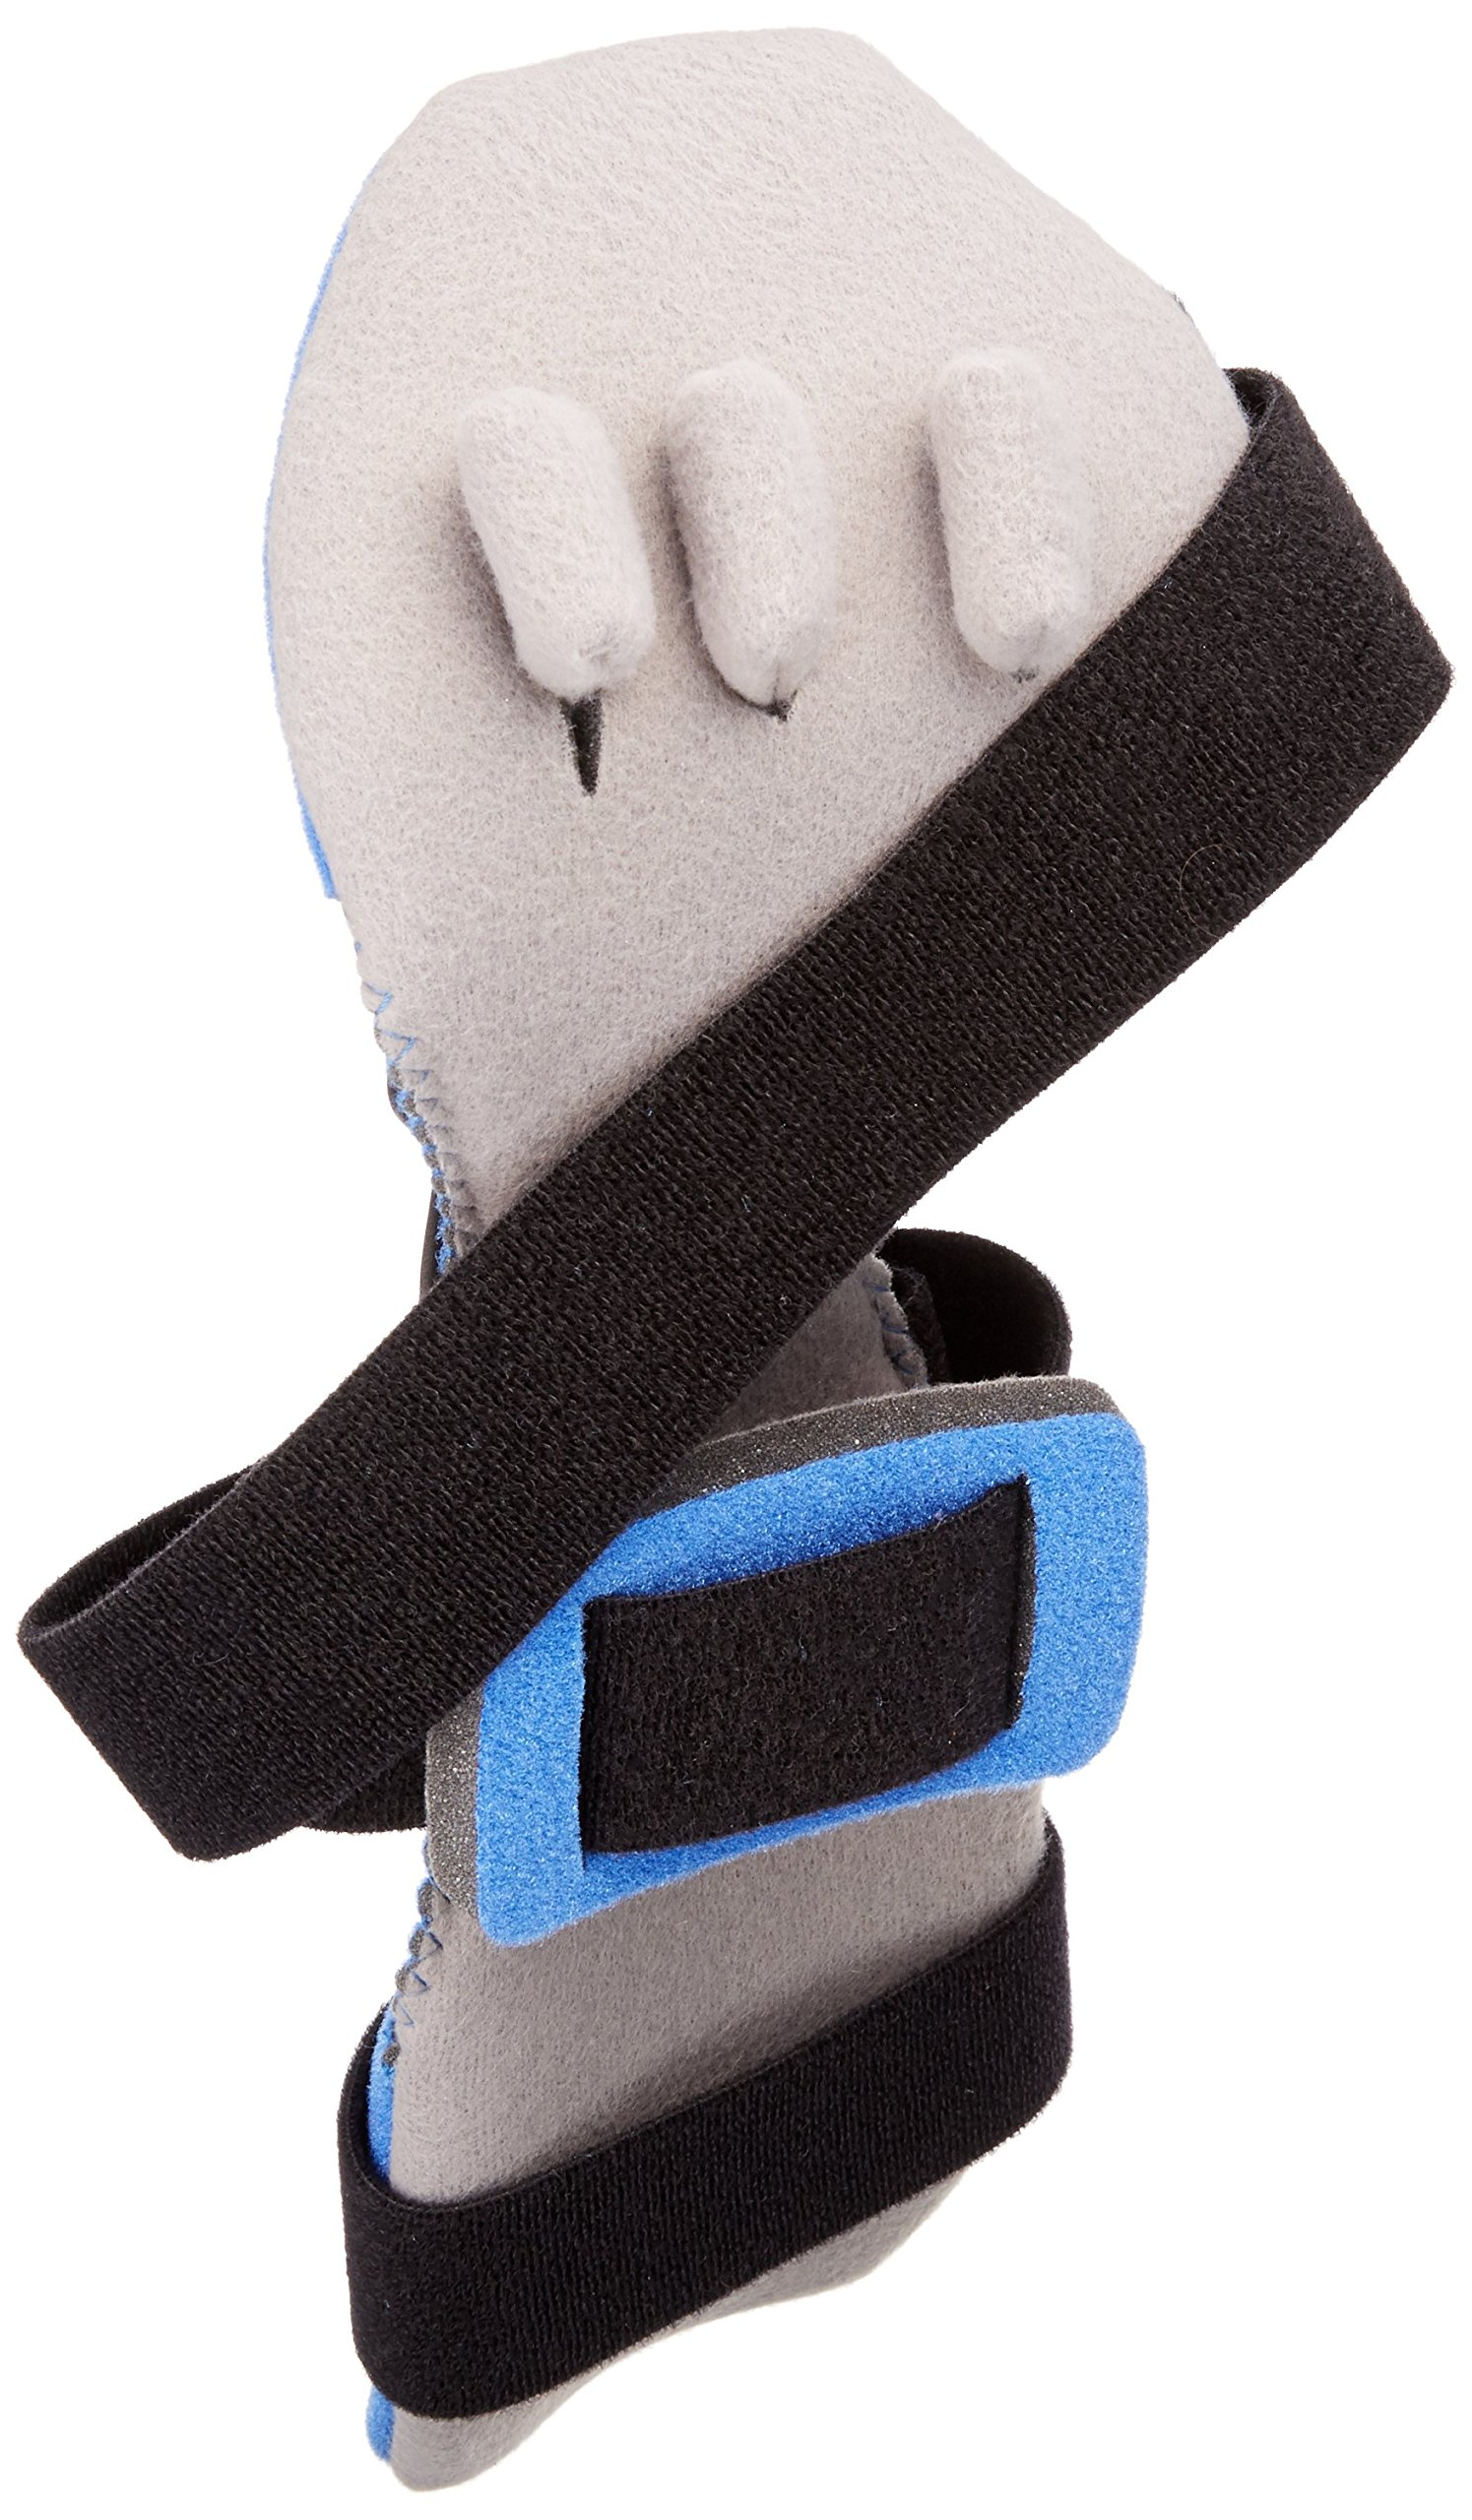 RCAI 32GHK-L-L Geriatric Hand Orthosis with Finger Separators, Left, Large